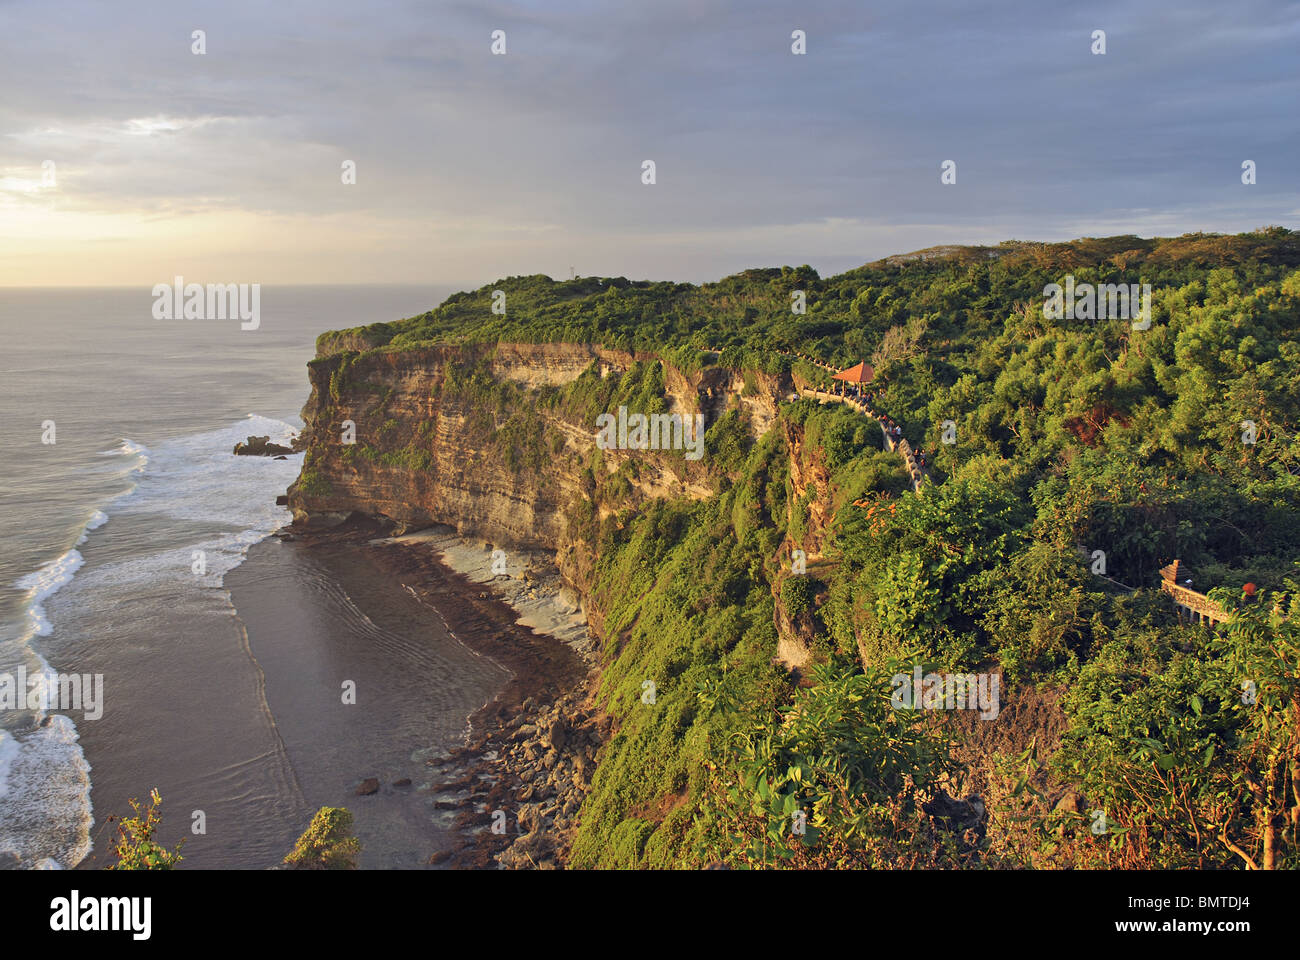 Indonesia-Bali, General-View of limestone table land of Bukit Peninsula at 200mts above sea level. General-View - Stock Image